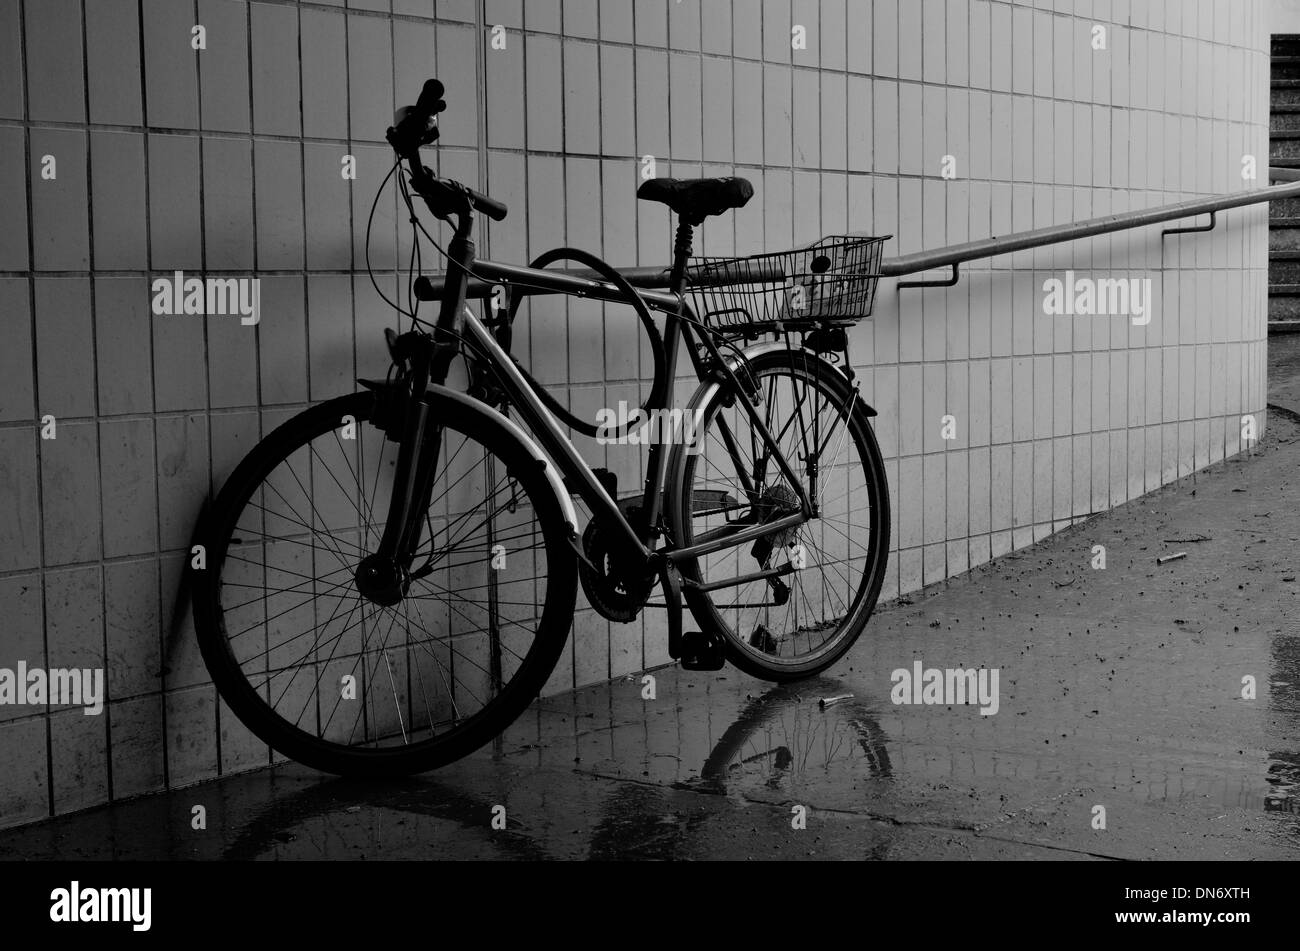 City bicycle parked in the subway - Stock Image